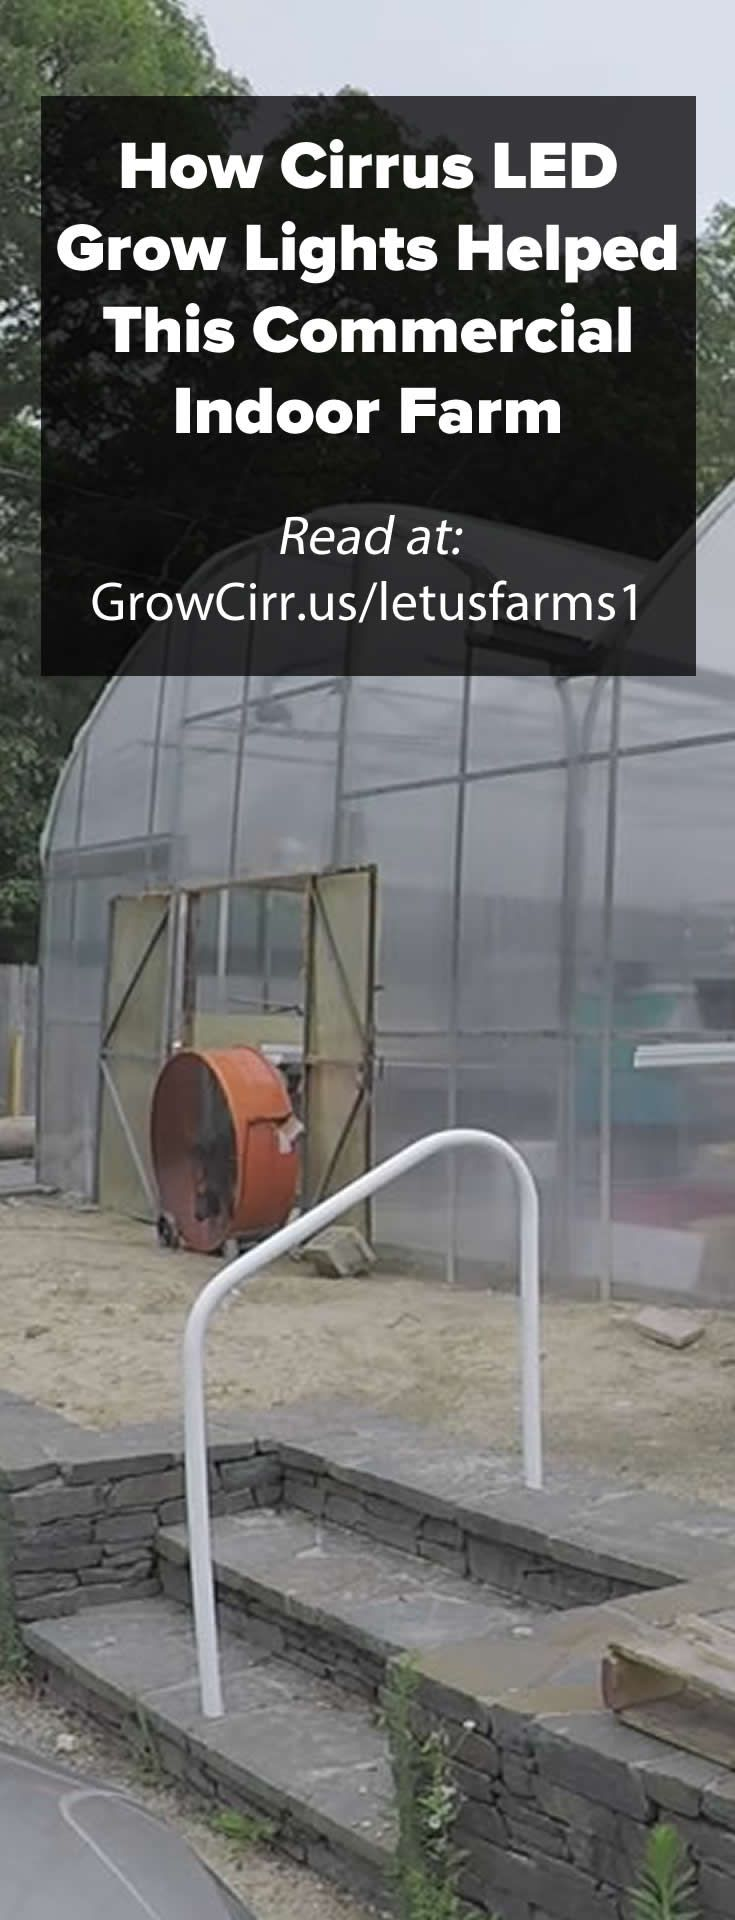 The startup process for a commercial indoor farm is a challenge to say the least. From navigating local zoning laws and business ordinances, to managing multiple contractors, to meeting deadlines for getting started in order to generate revenue and repay loans; it's a delicate juggling act that can easily be disrupted. The team at Cirrus LED Grow Lights understands these challenges having help many commercial greenhouses through the process.